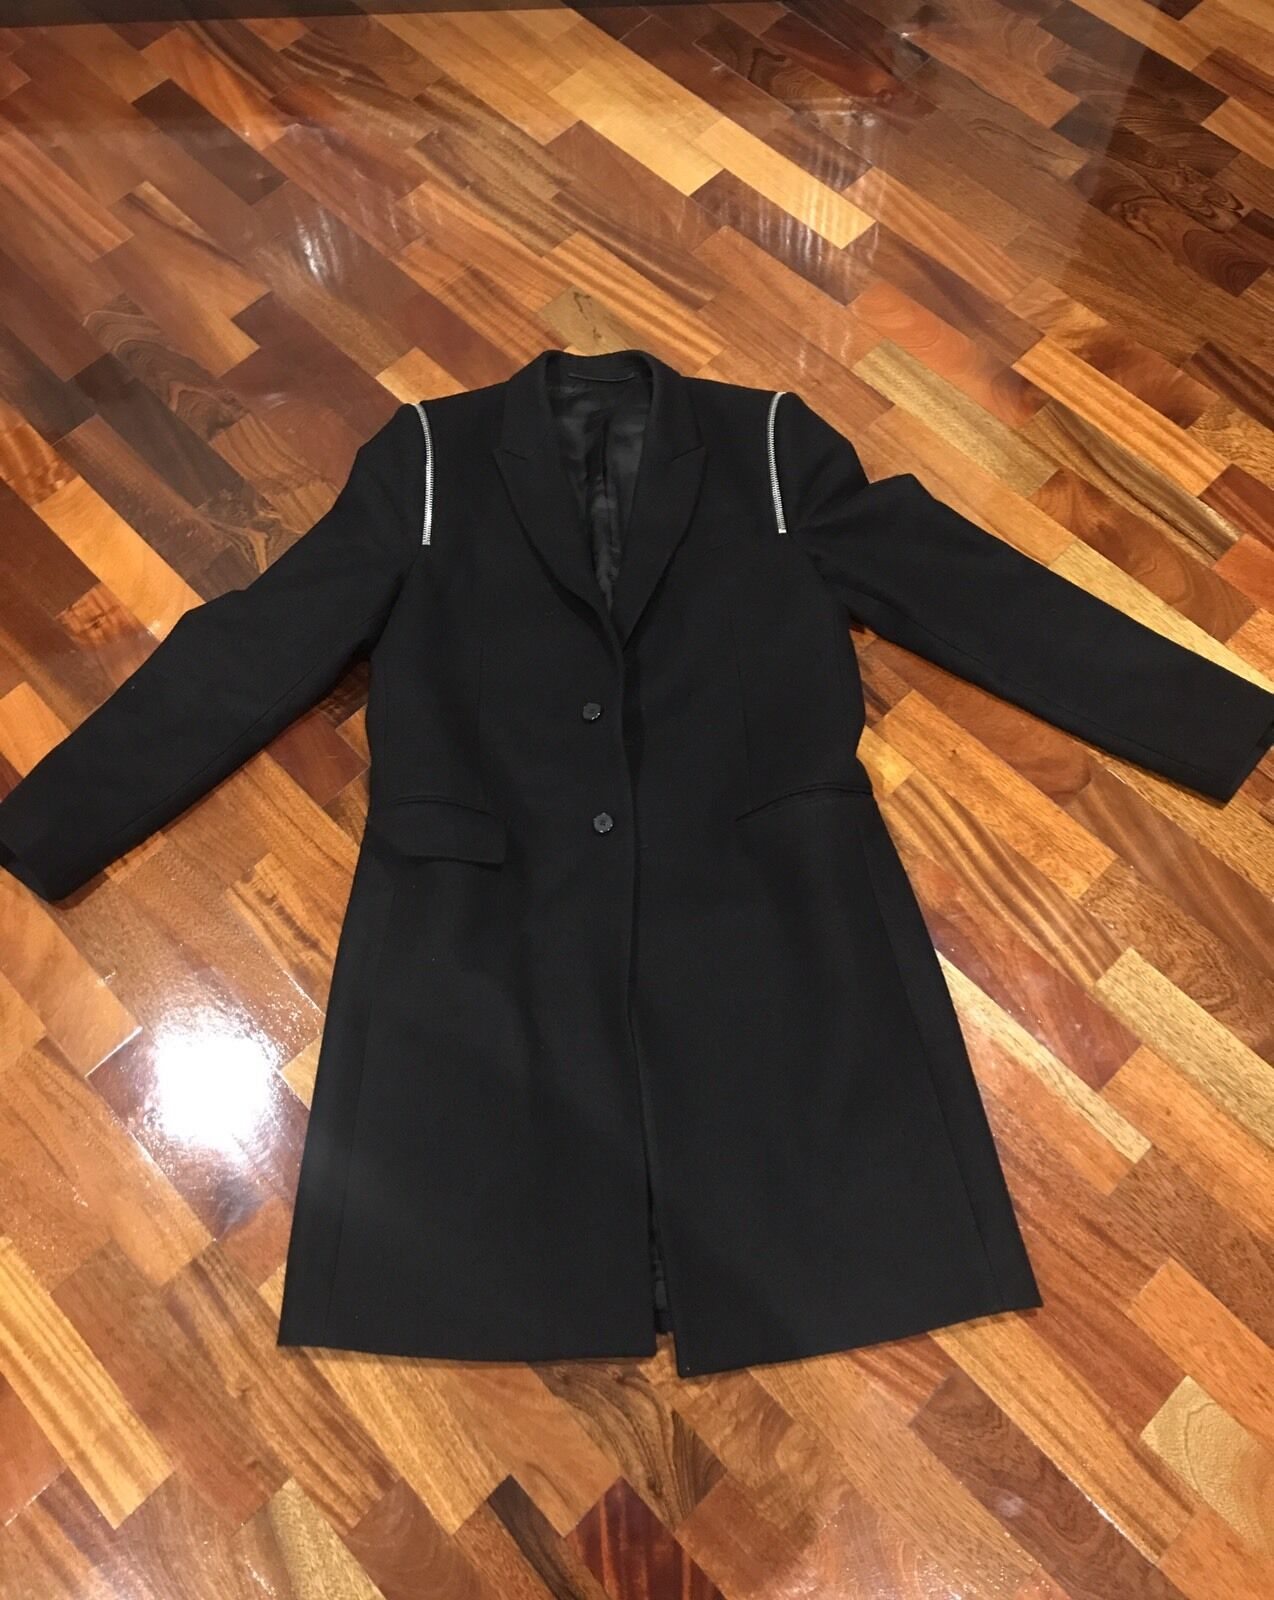 Givenchy Givenchy Givenchy Classic 2016 Coat Größe 52 36ff4f